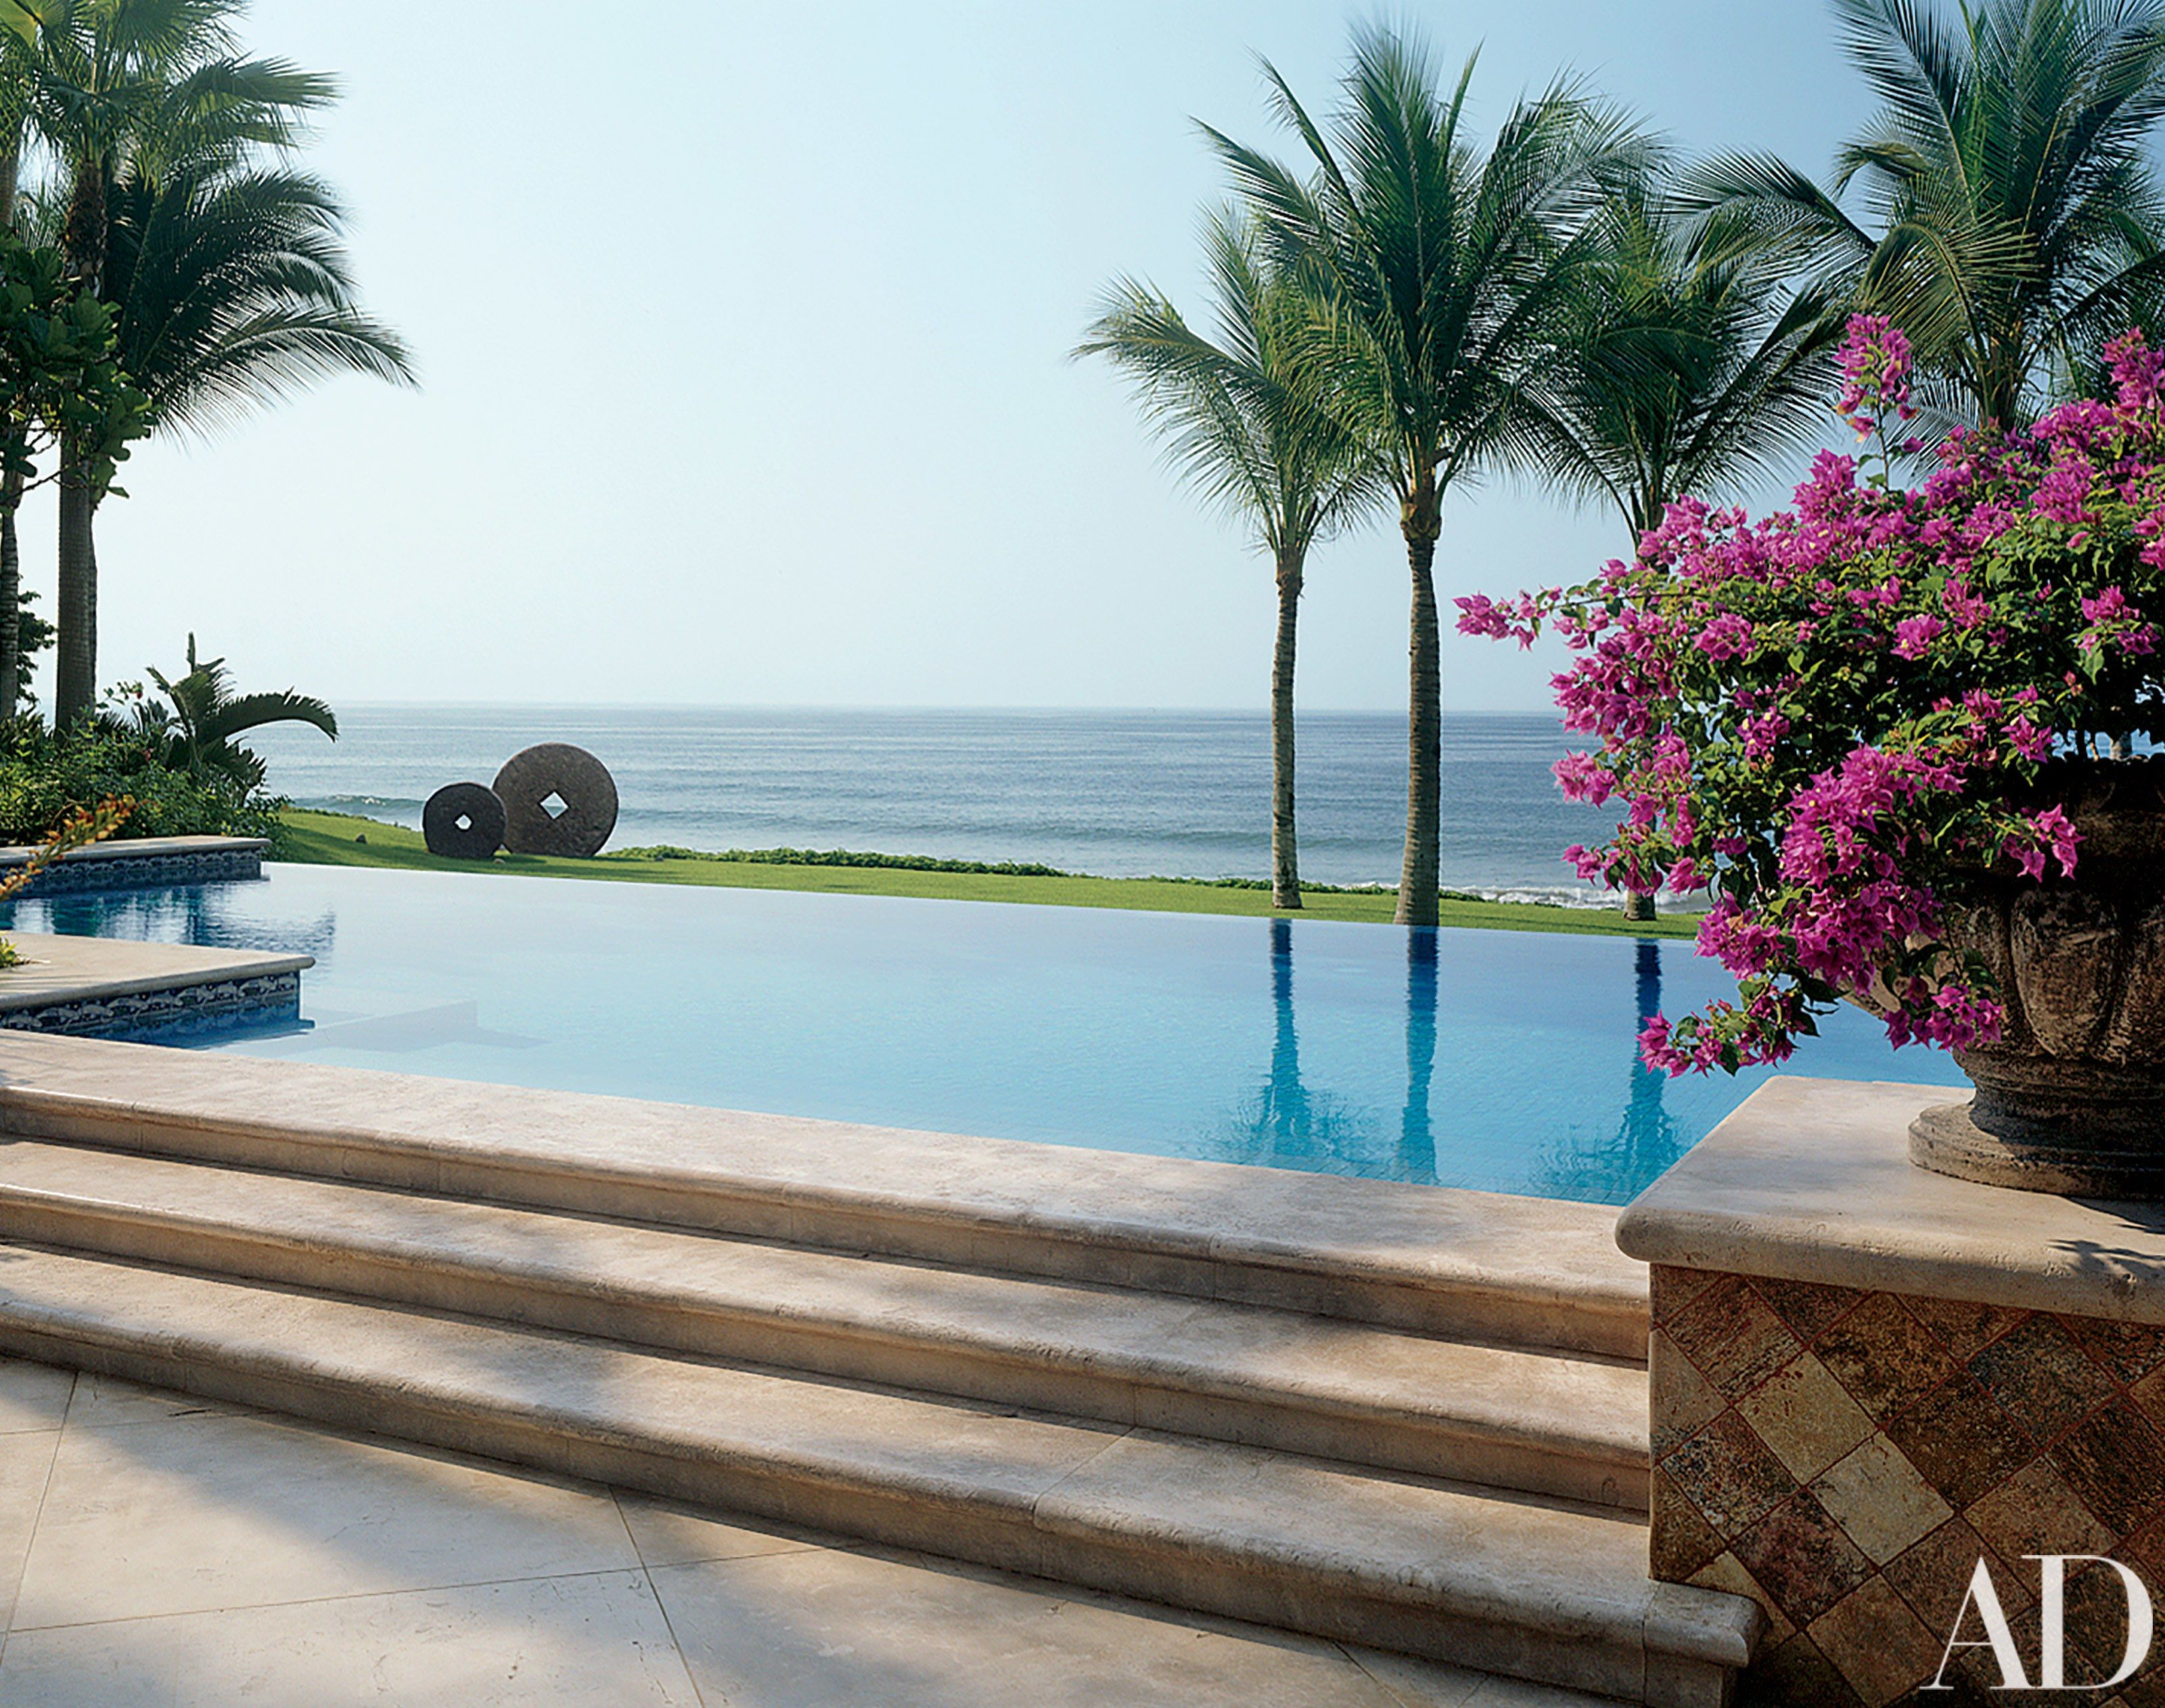 Beach Pool by Peter Roy Bowman and Guillermo Michel Renteria and Alvaro Gomez Flores in Punta Mita Mexico